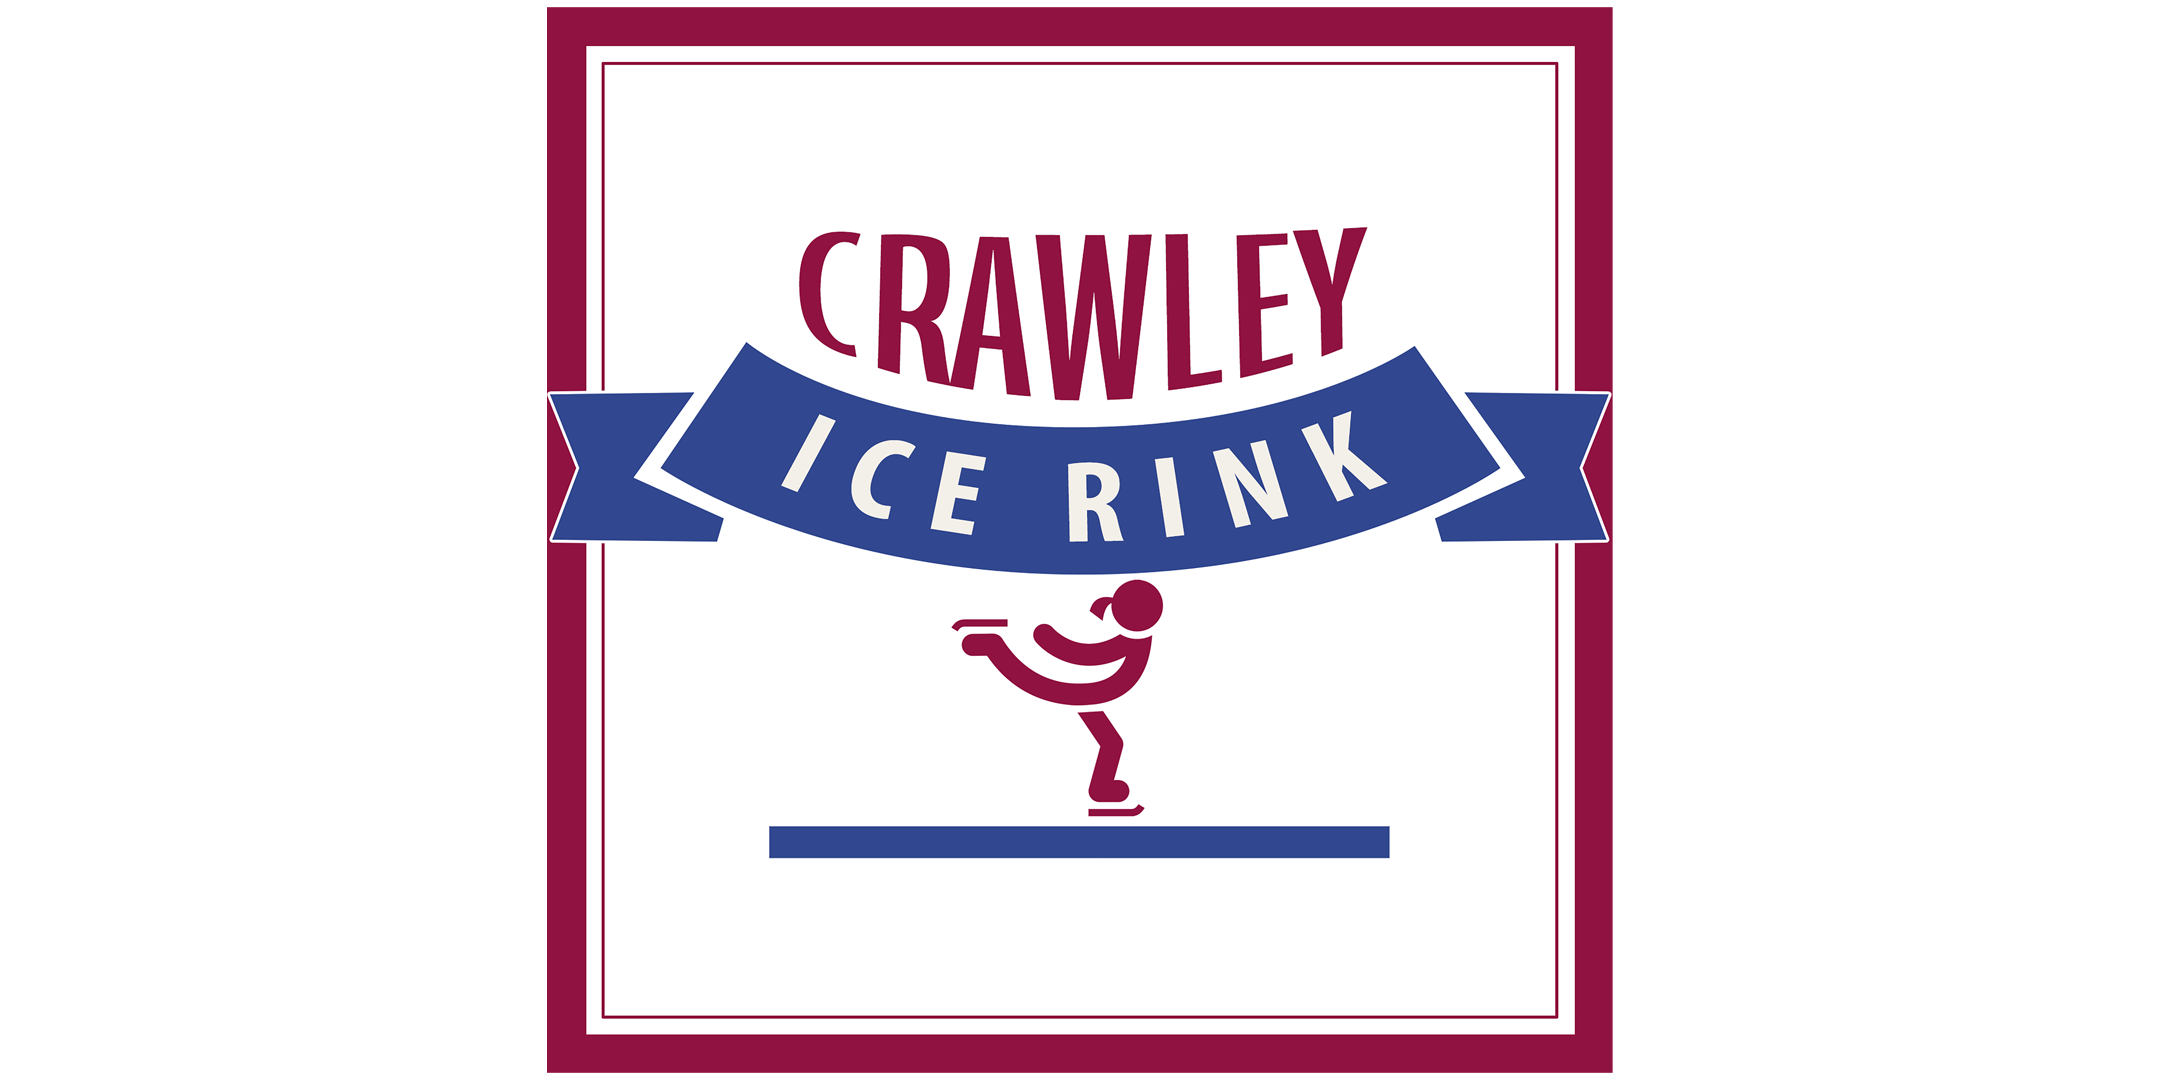 Crawley Ice Rink - 10th December (Peak)